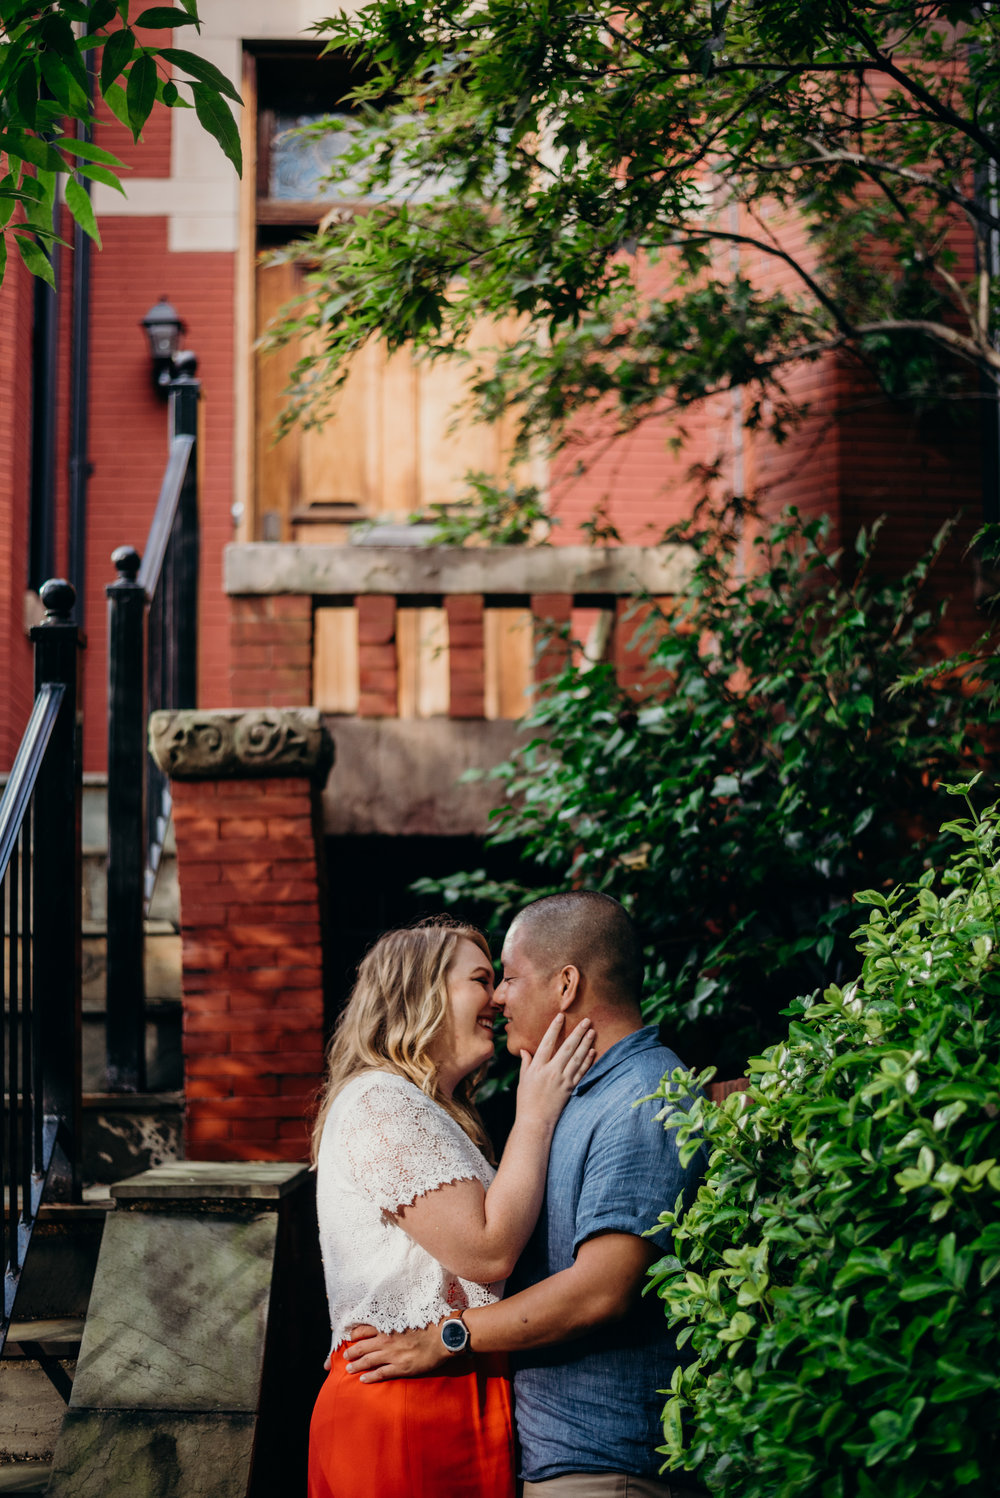 engaged couple kiss with brick building and trees in background